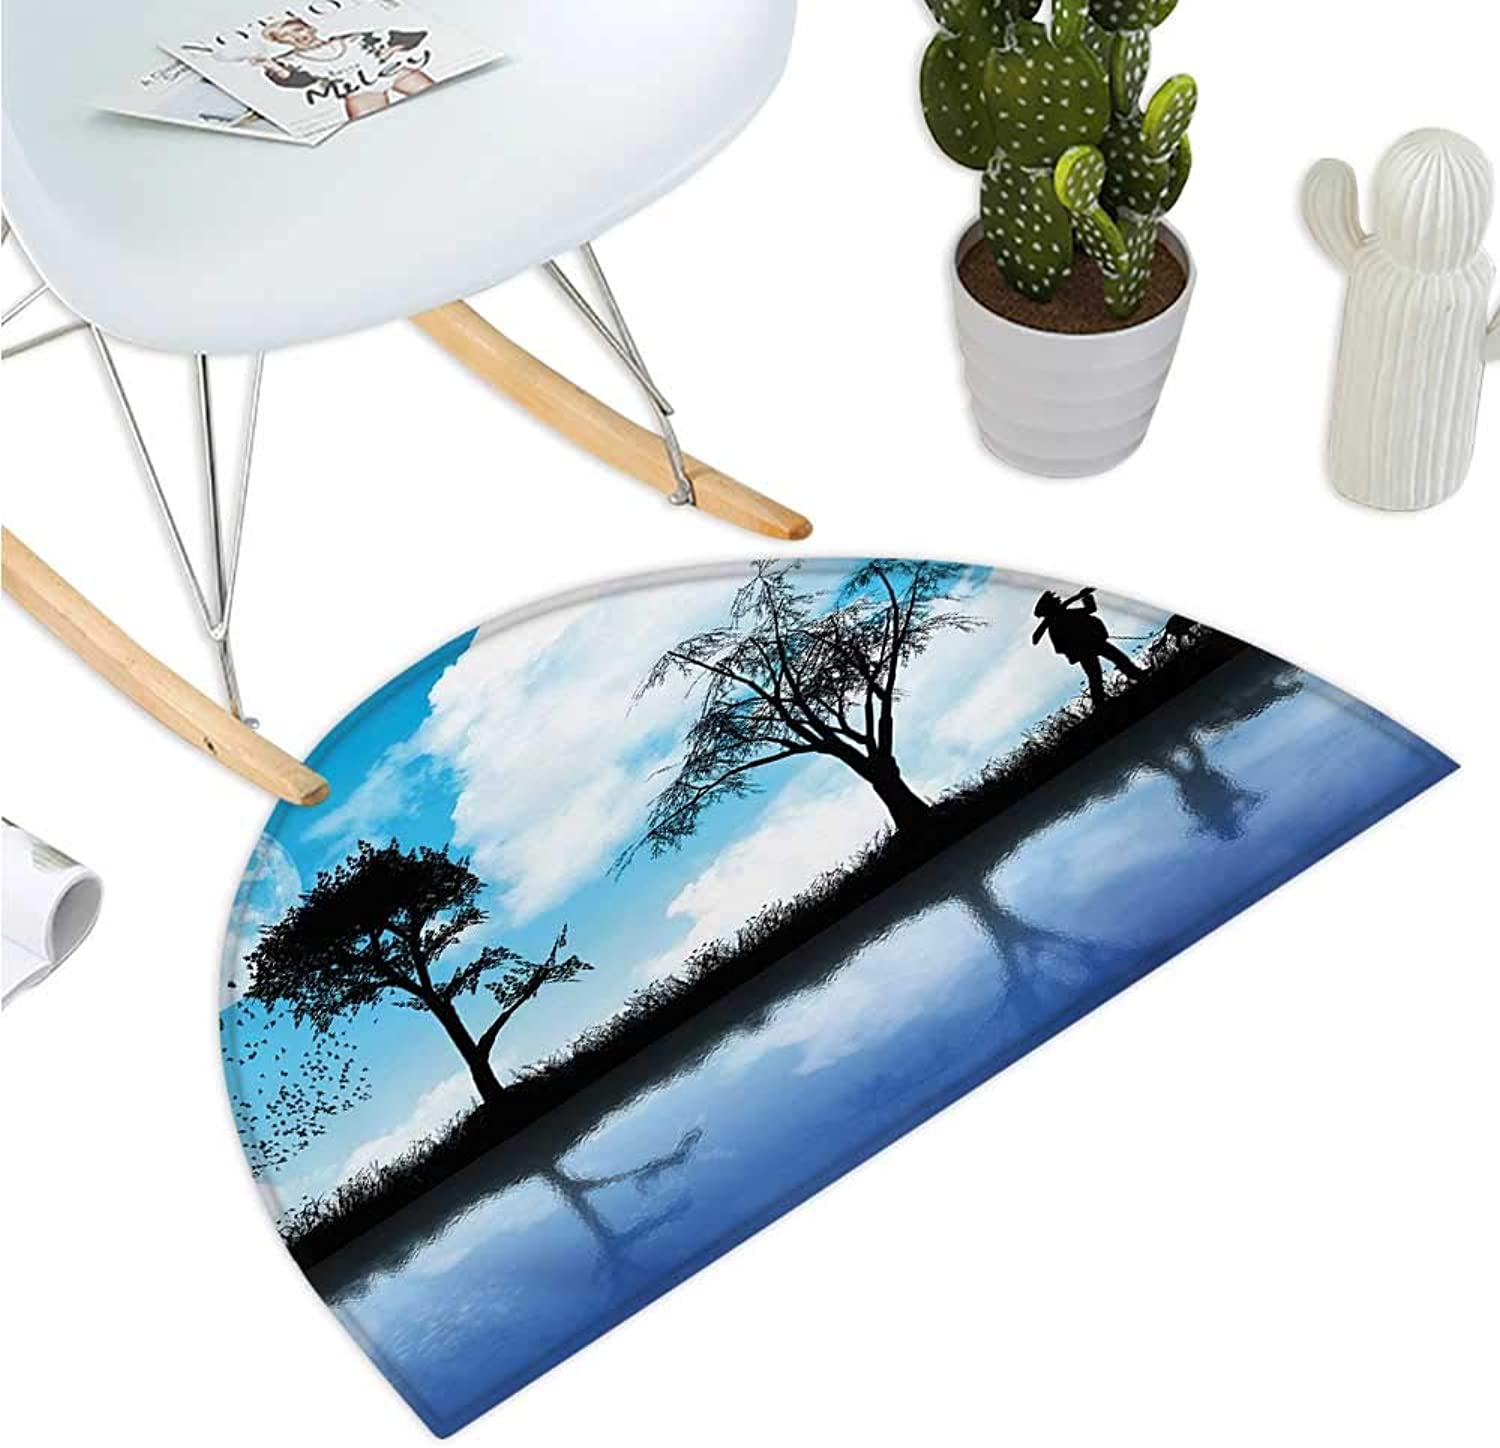 Nature Semicircle Doormat Man with The Dog Walking by The Lake with Tree Reflection Moon Sky Print Halfmoon doormats H 39.3  xD 59  Sky bluee Black White